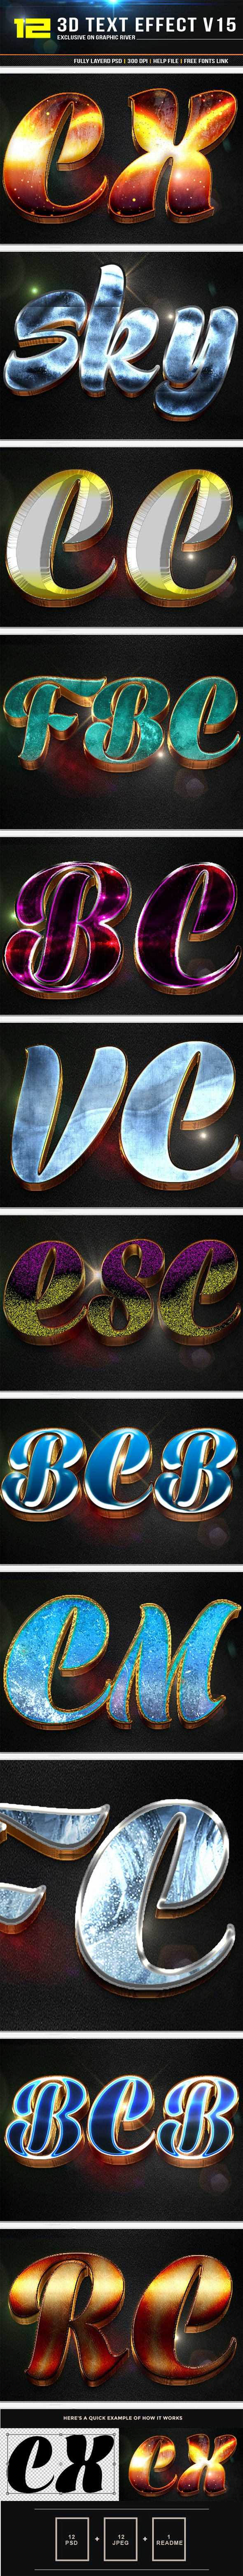 12 3D Text Effect v15 - Text Effects Styles